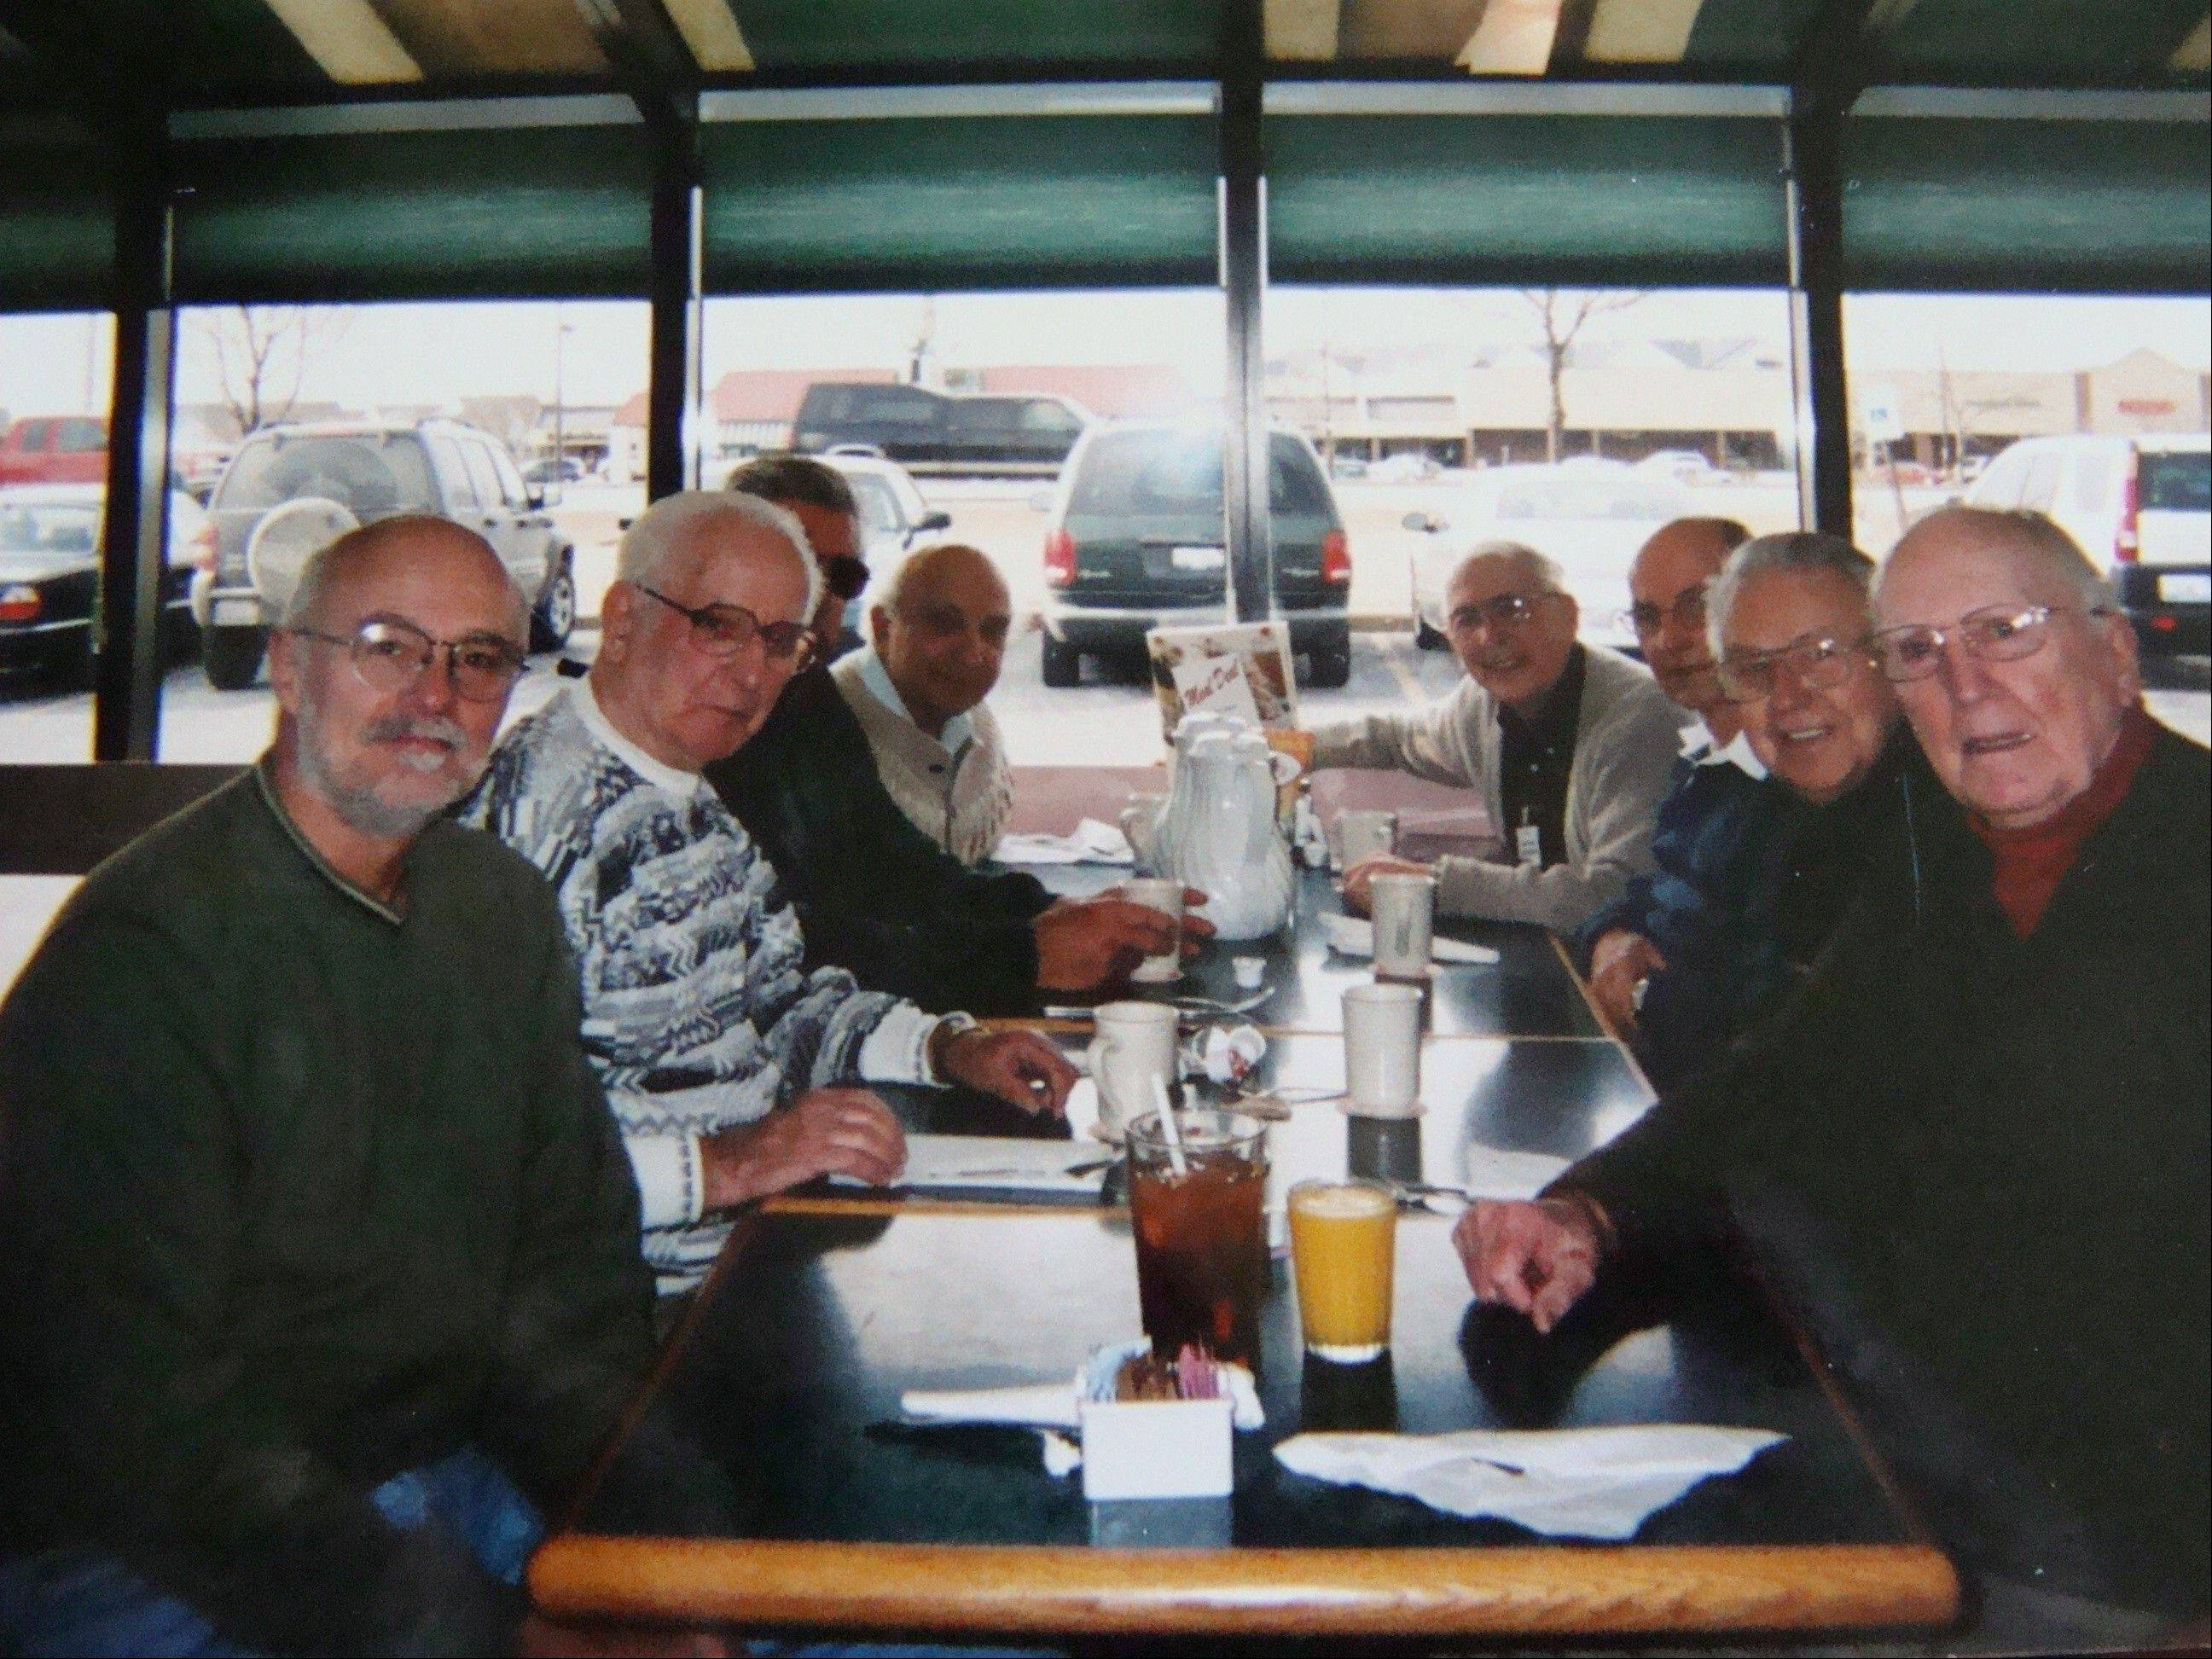 """The Beach Boys,"" a group of D-Day survivors from the Geneva area who met regularly for breakfast, were among the first interviews done by author Jeff Meek."